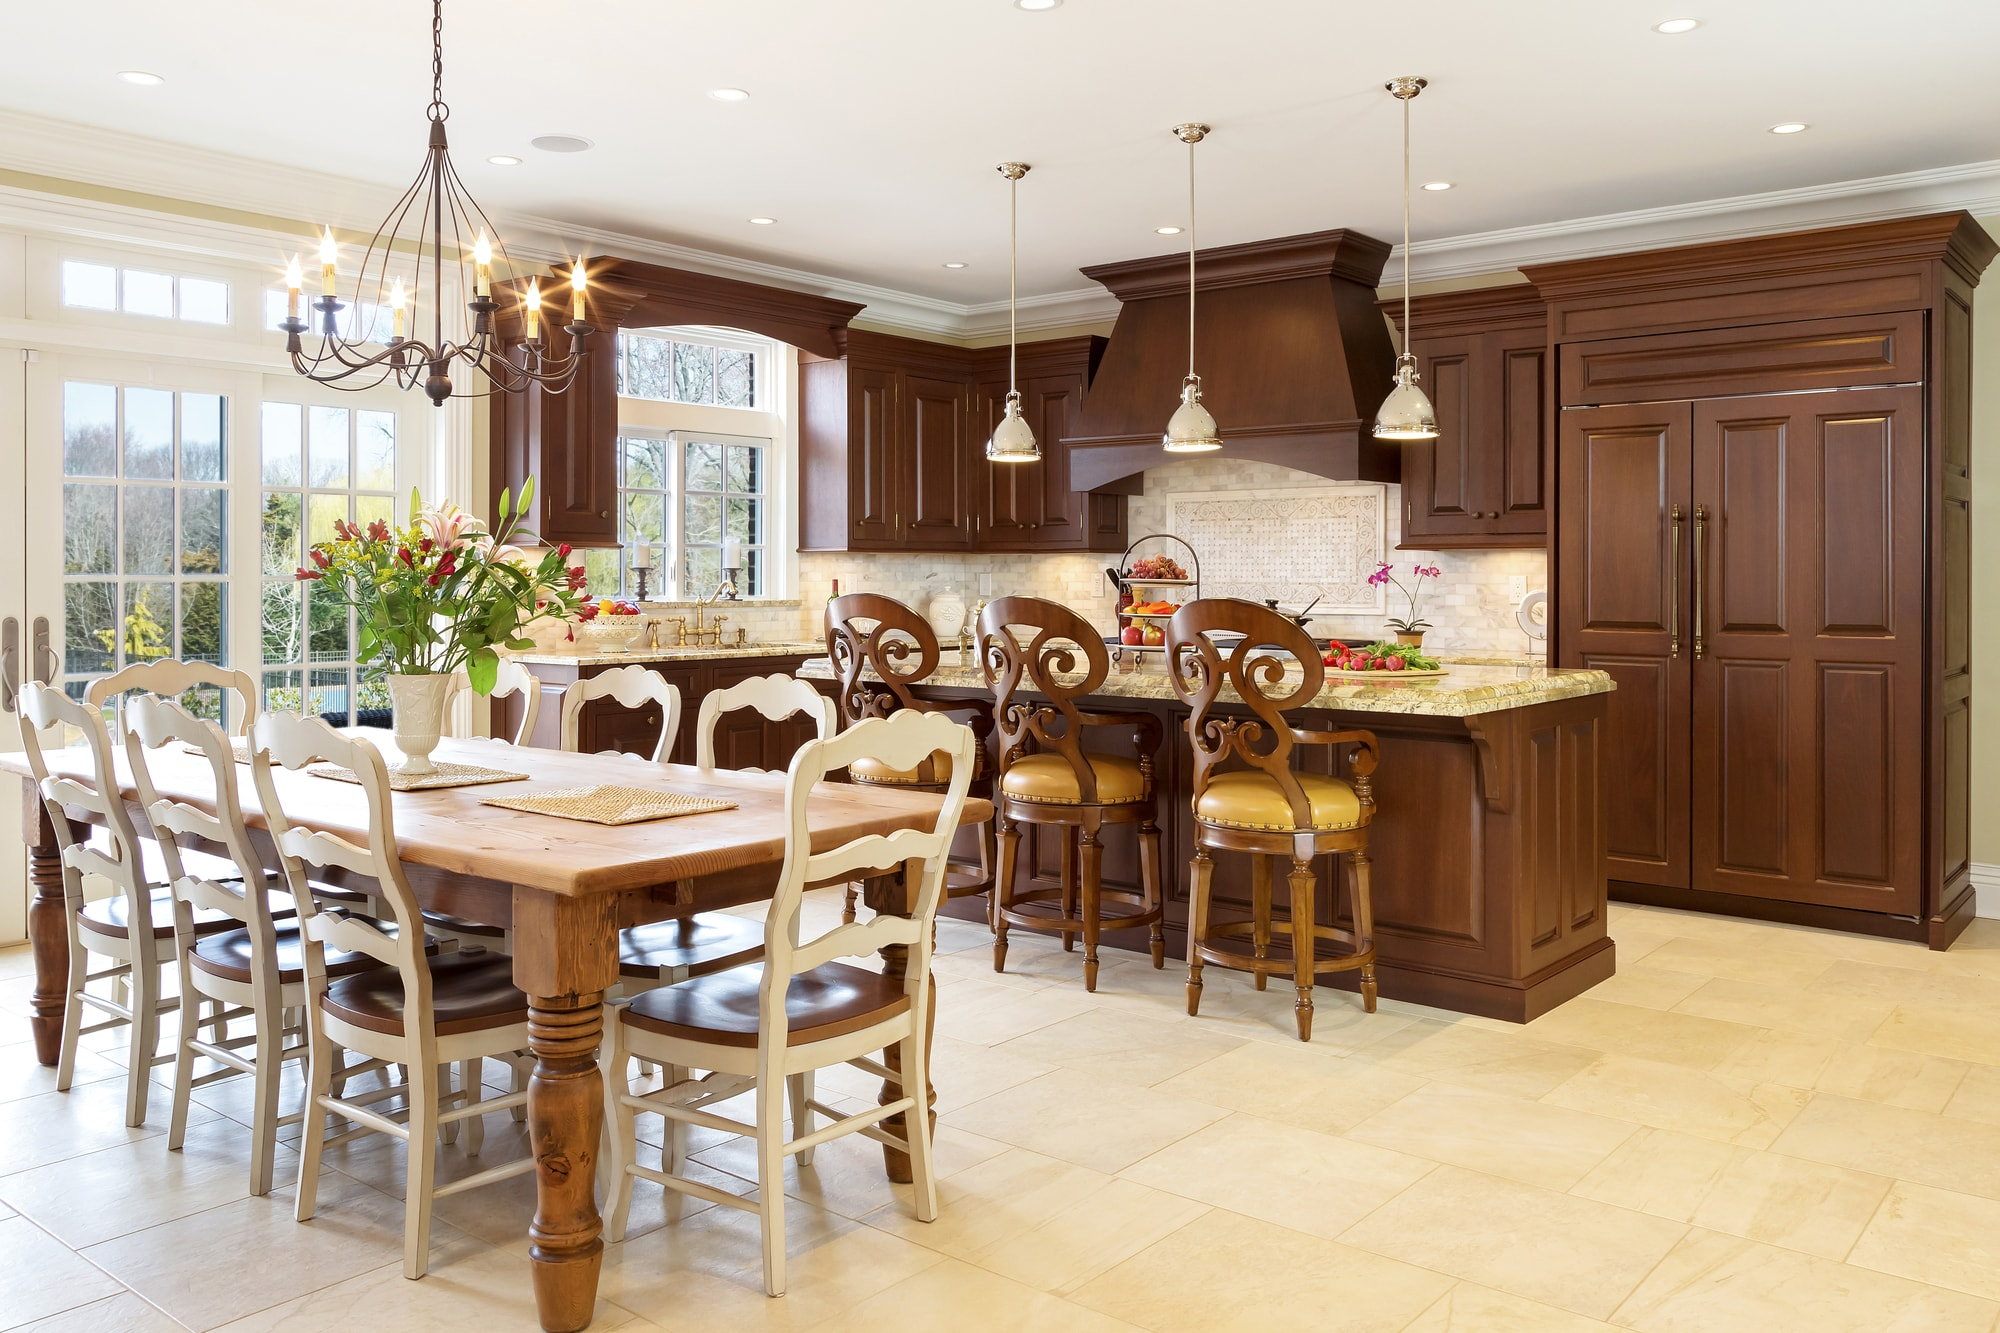 Traditional style kitchen with spacious and tiled floor